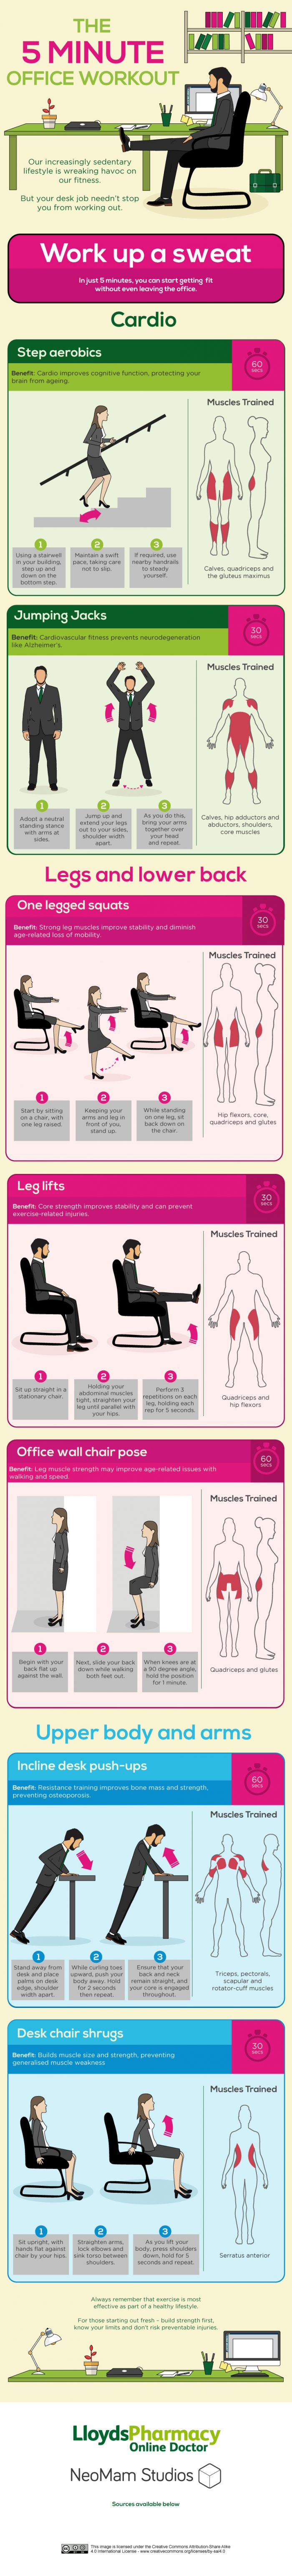 five-minute-office-workout-options-infographic